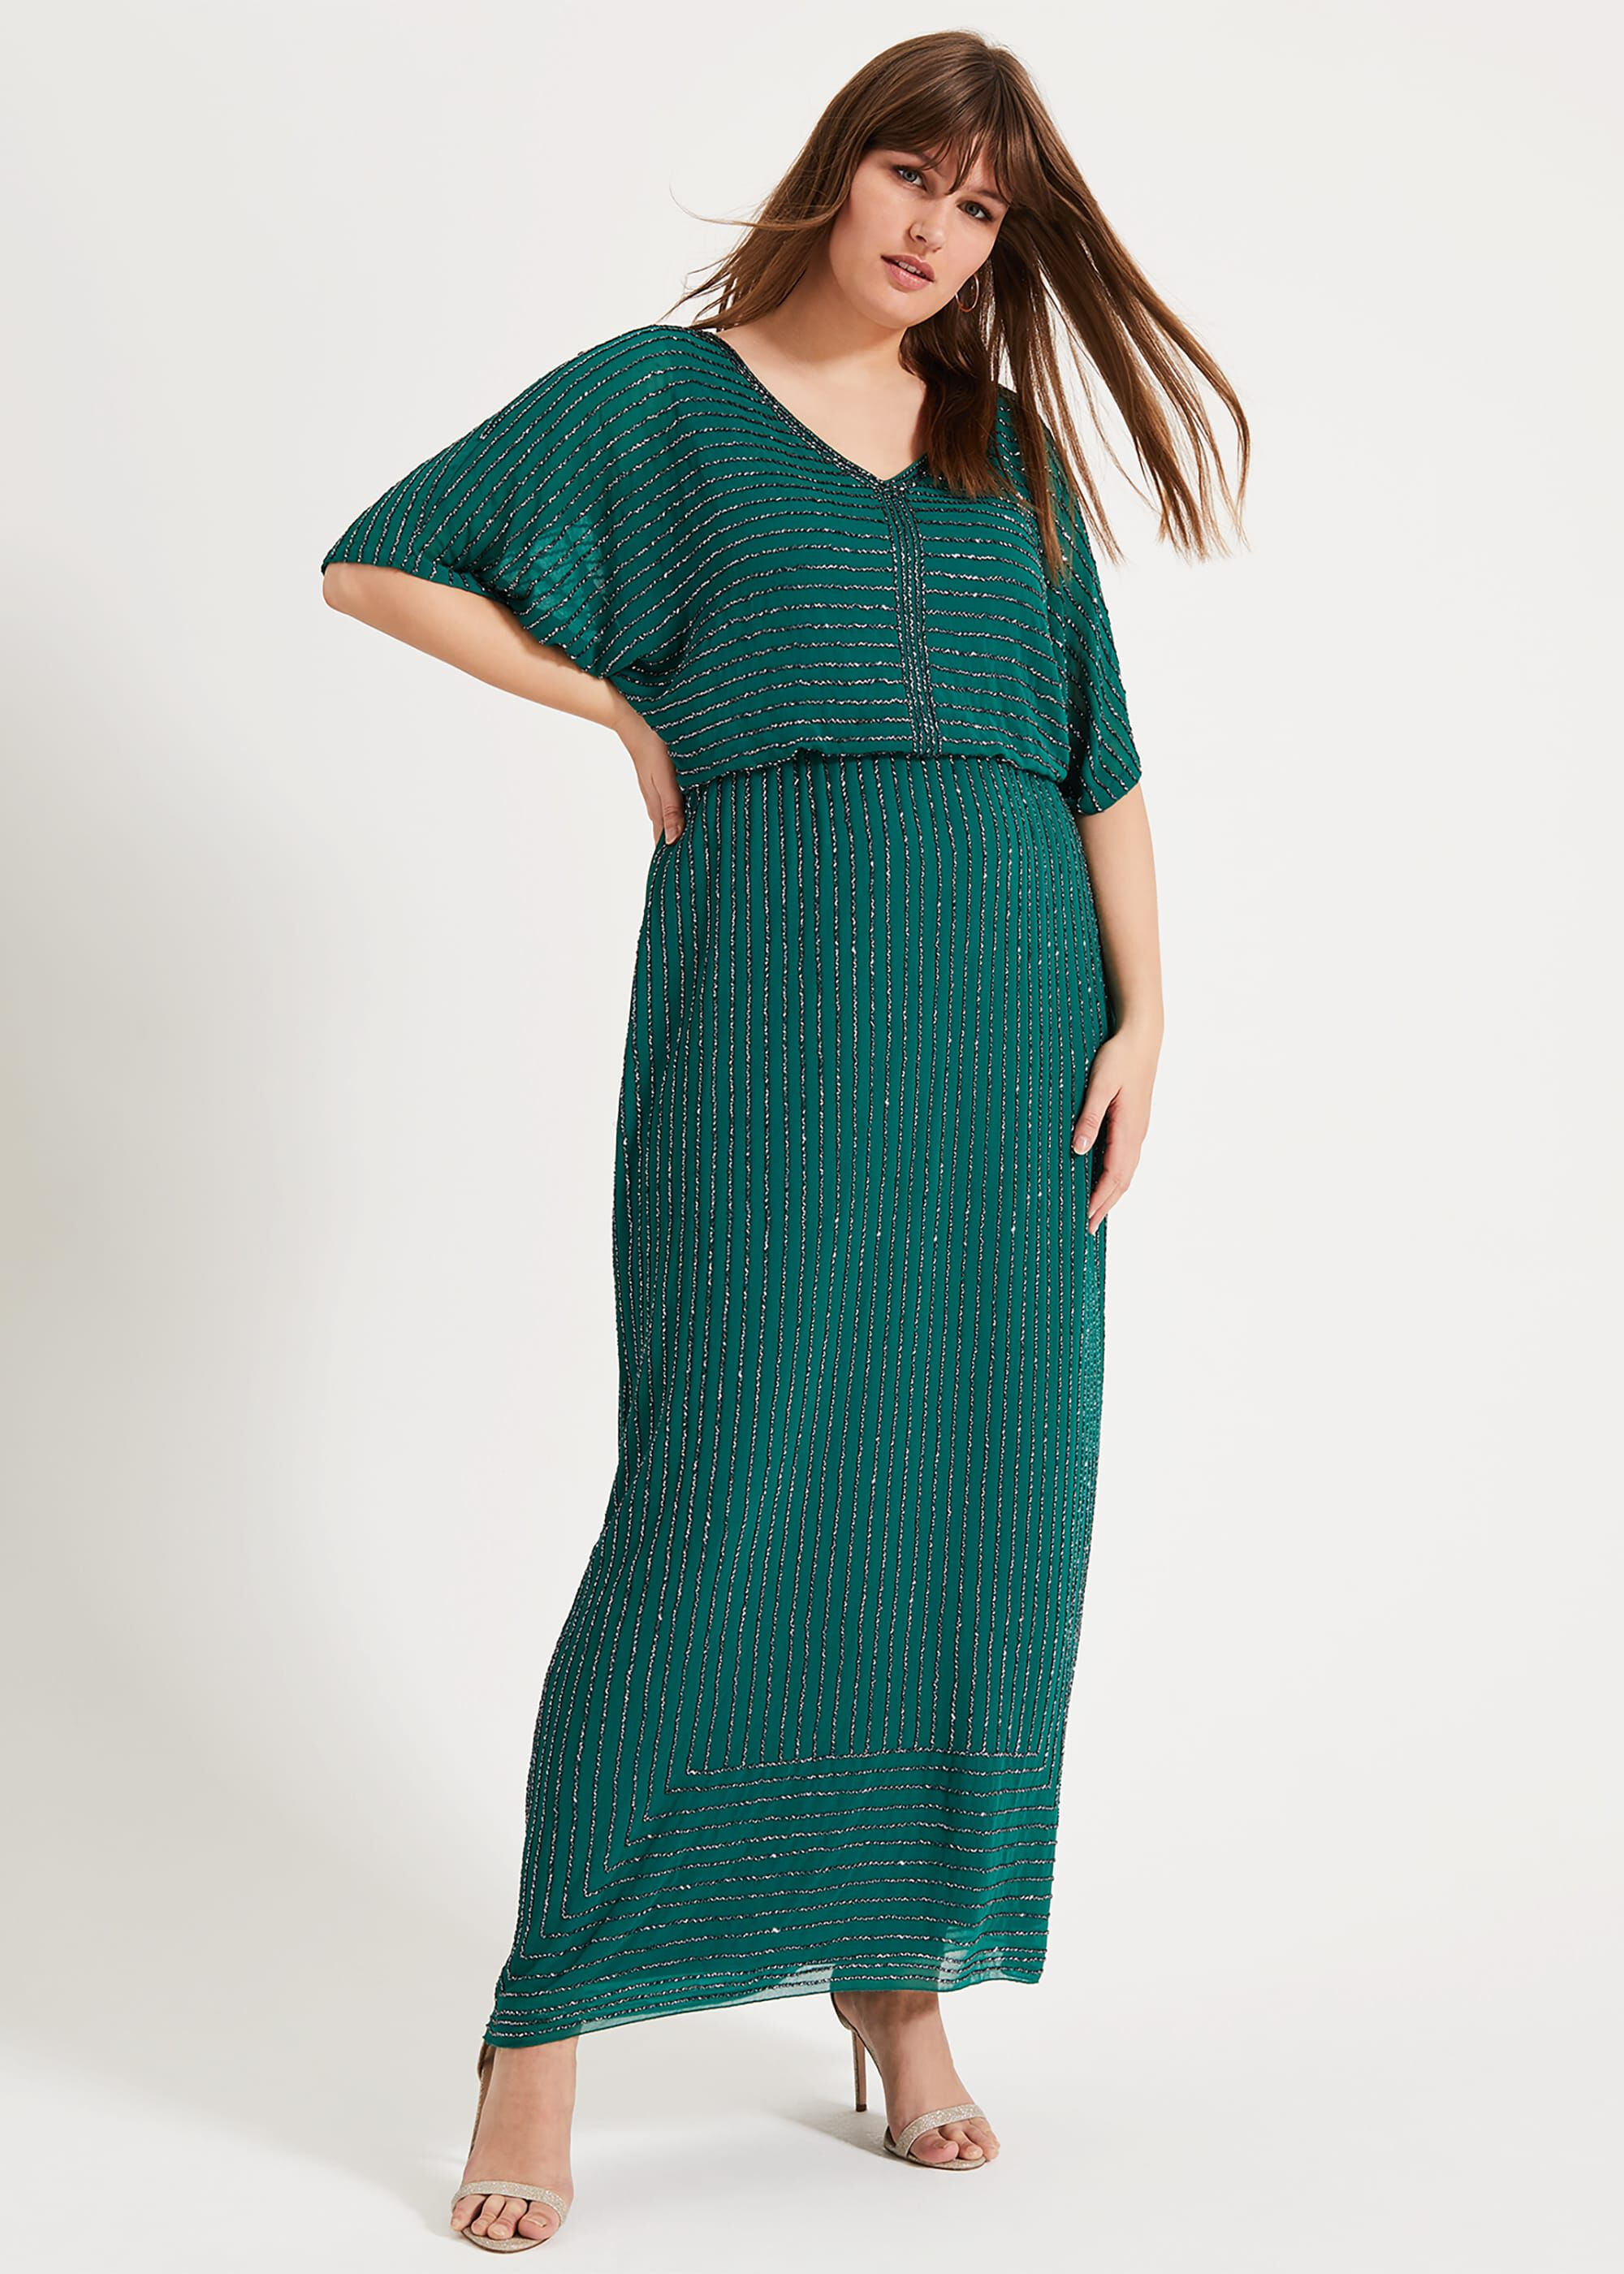 Studio 8 Hera Beaded Maxi Dress, Green, Maxi